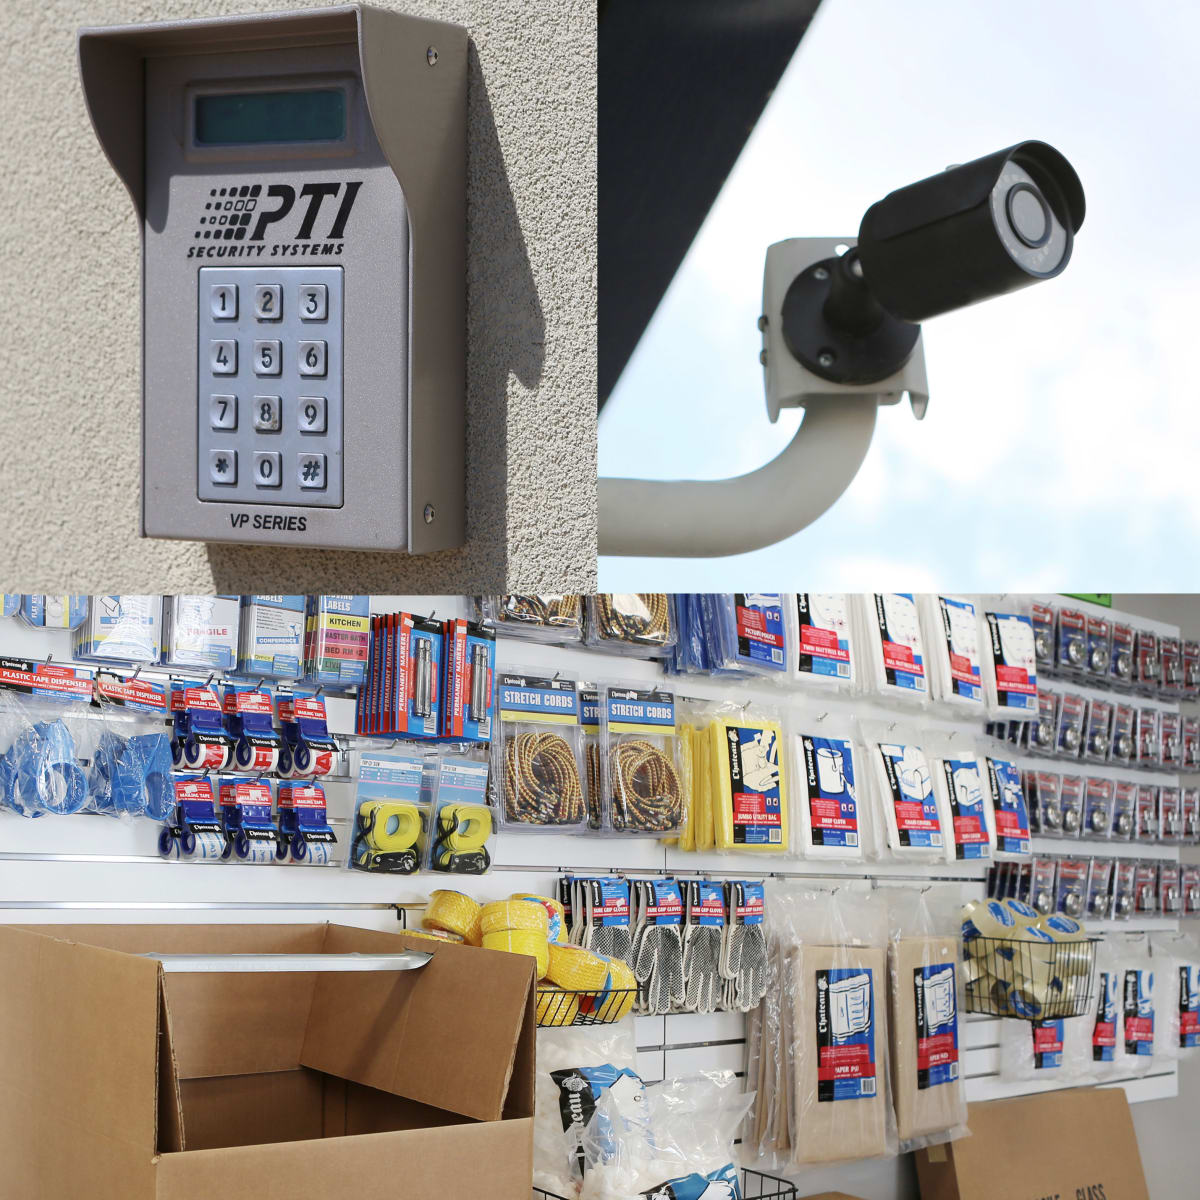 We provide 24 hour security monitoring and sell various moving and packing supplies at StoreSmart Self-Storage in Charleston, South Carolina